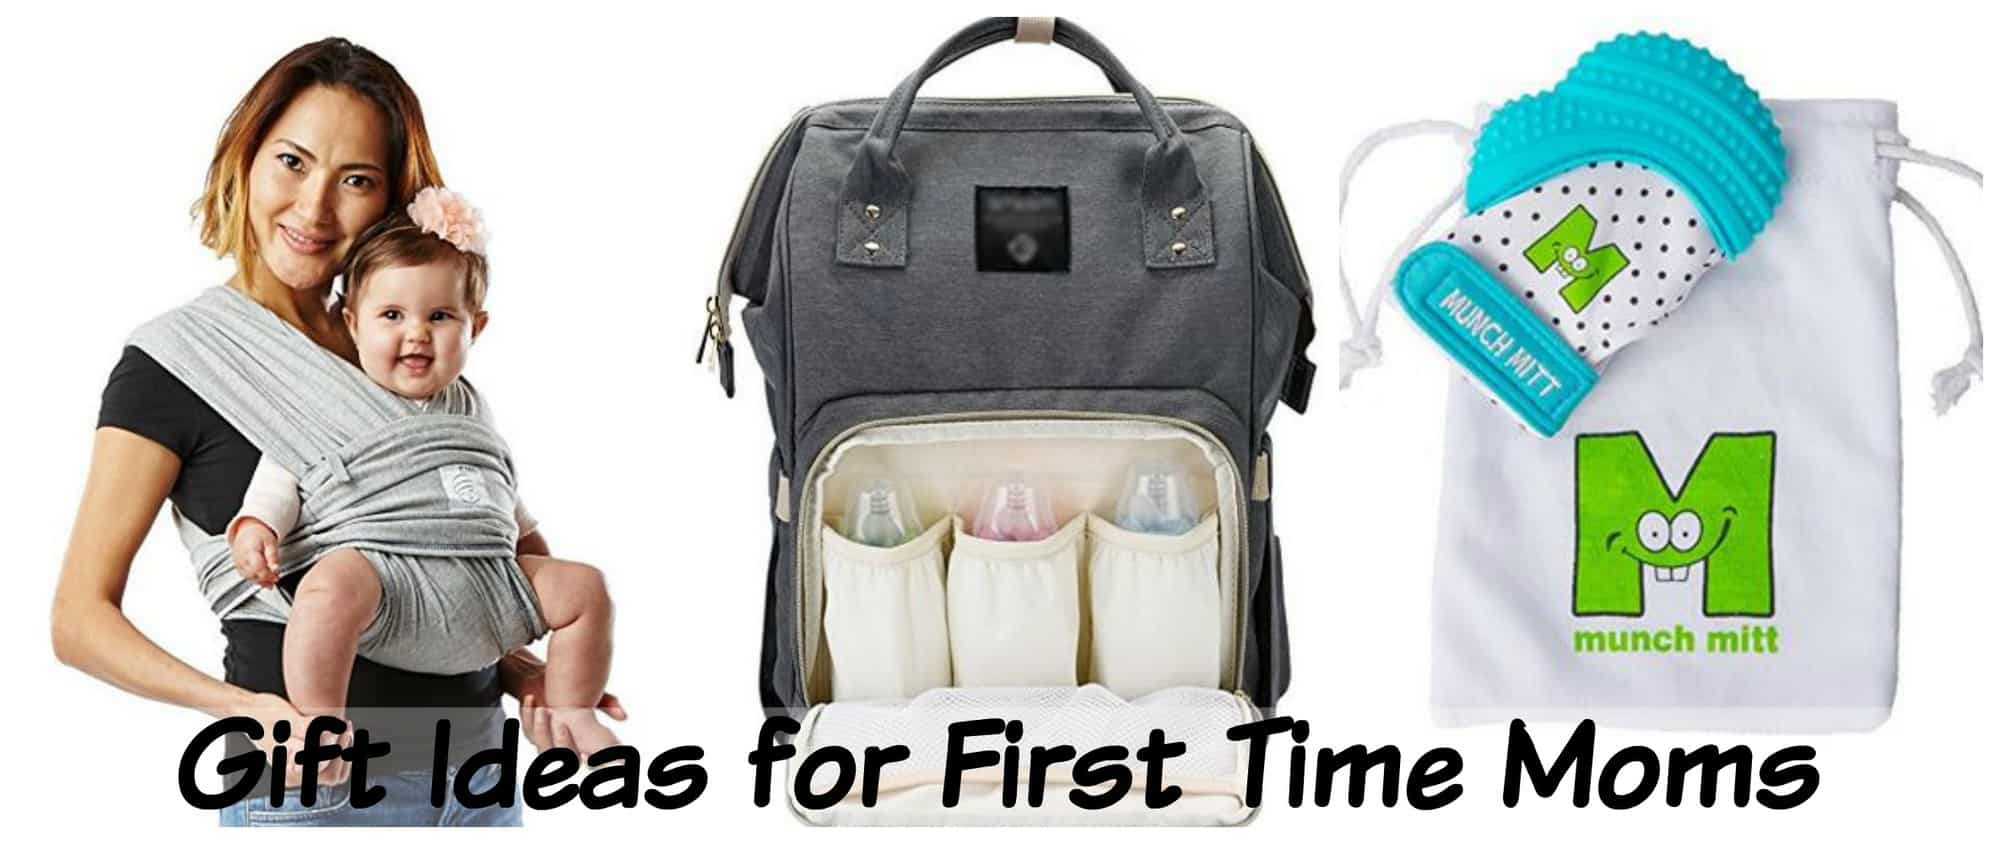 18+ Gift Ideas for a First Time Mom